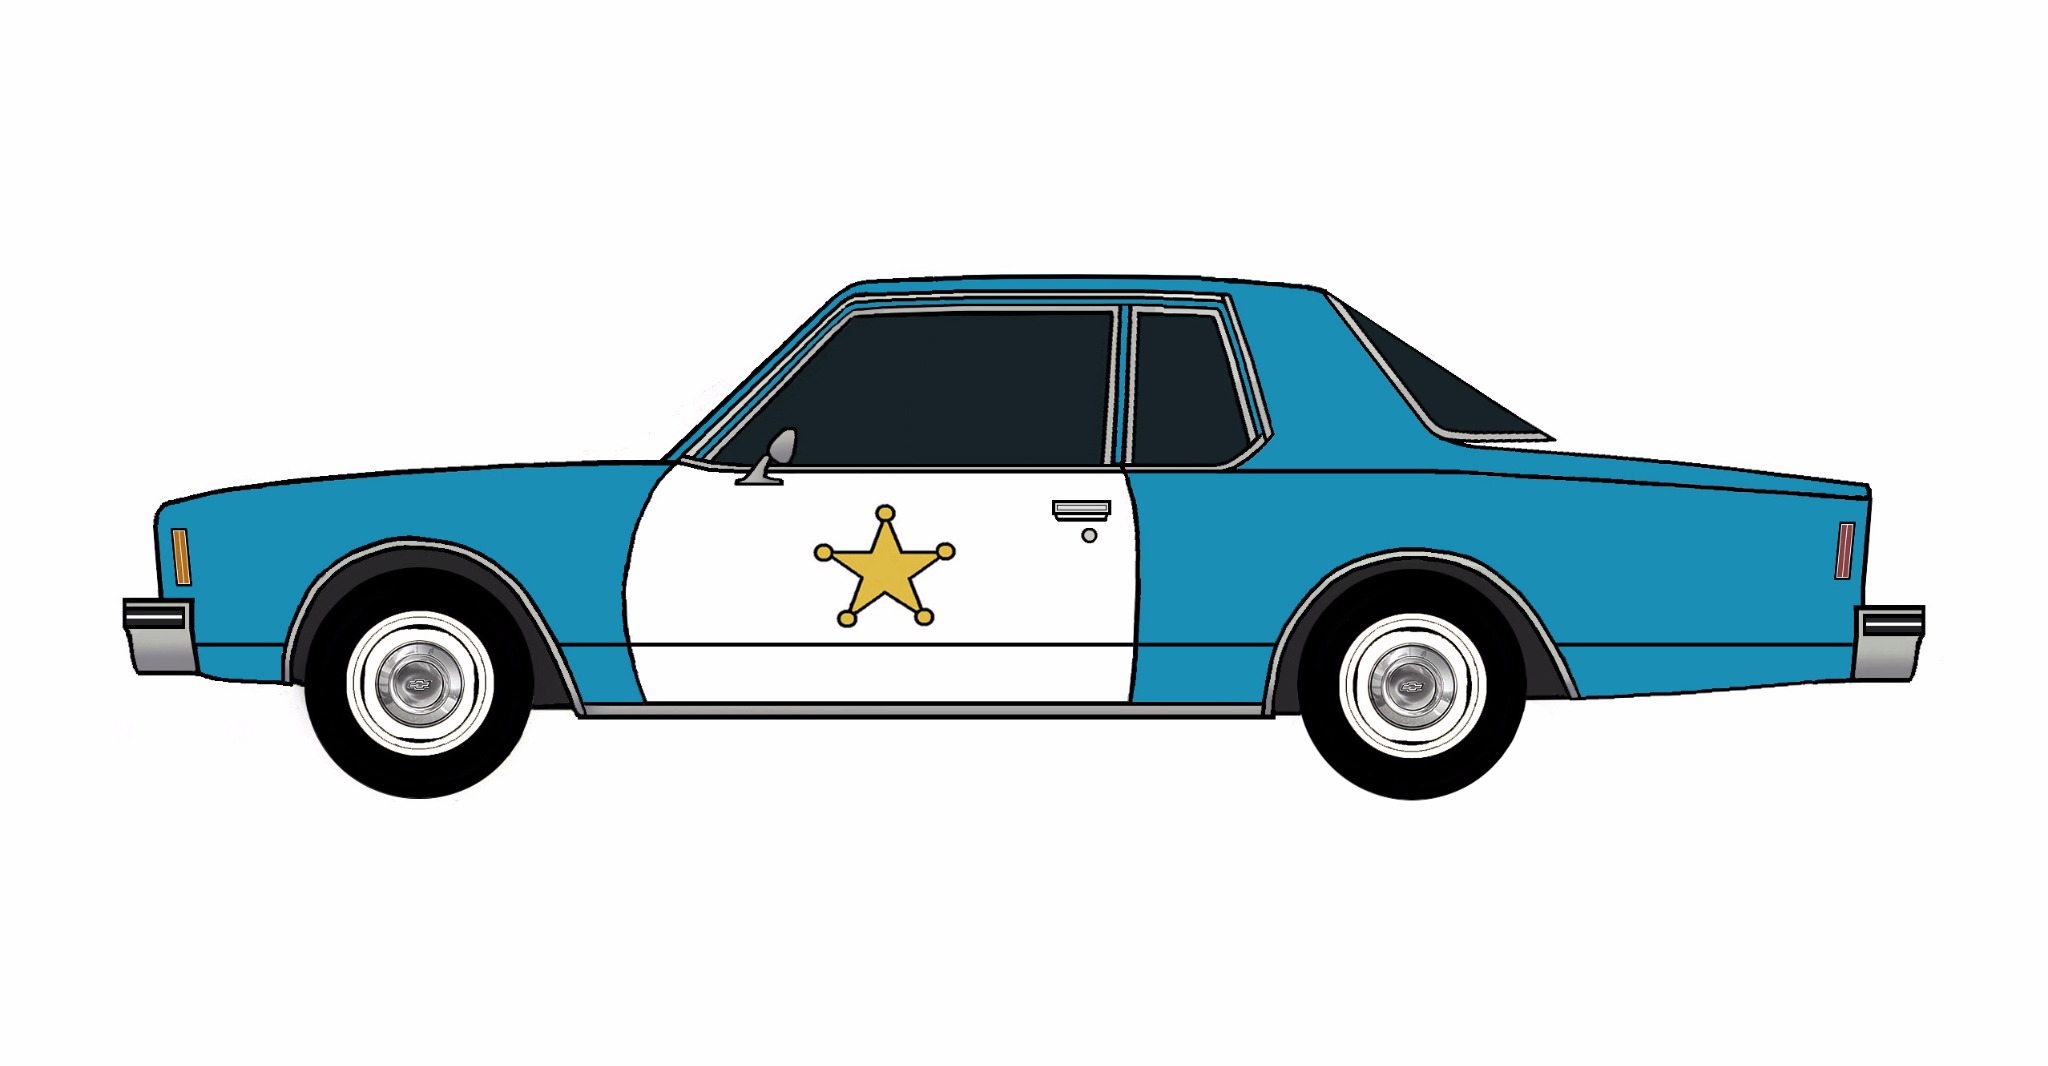 1978 Chevy Impala Police Coupe SEA BLUE